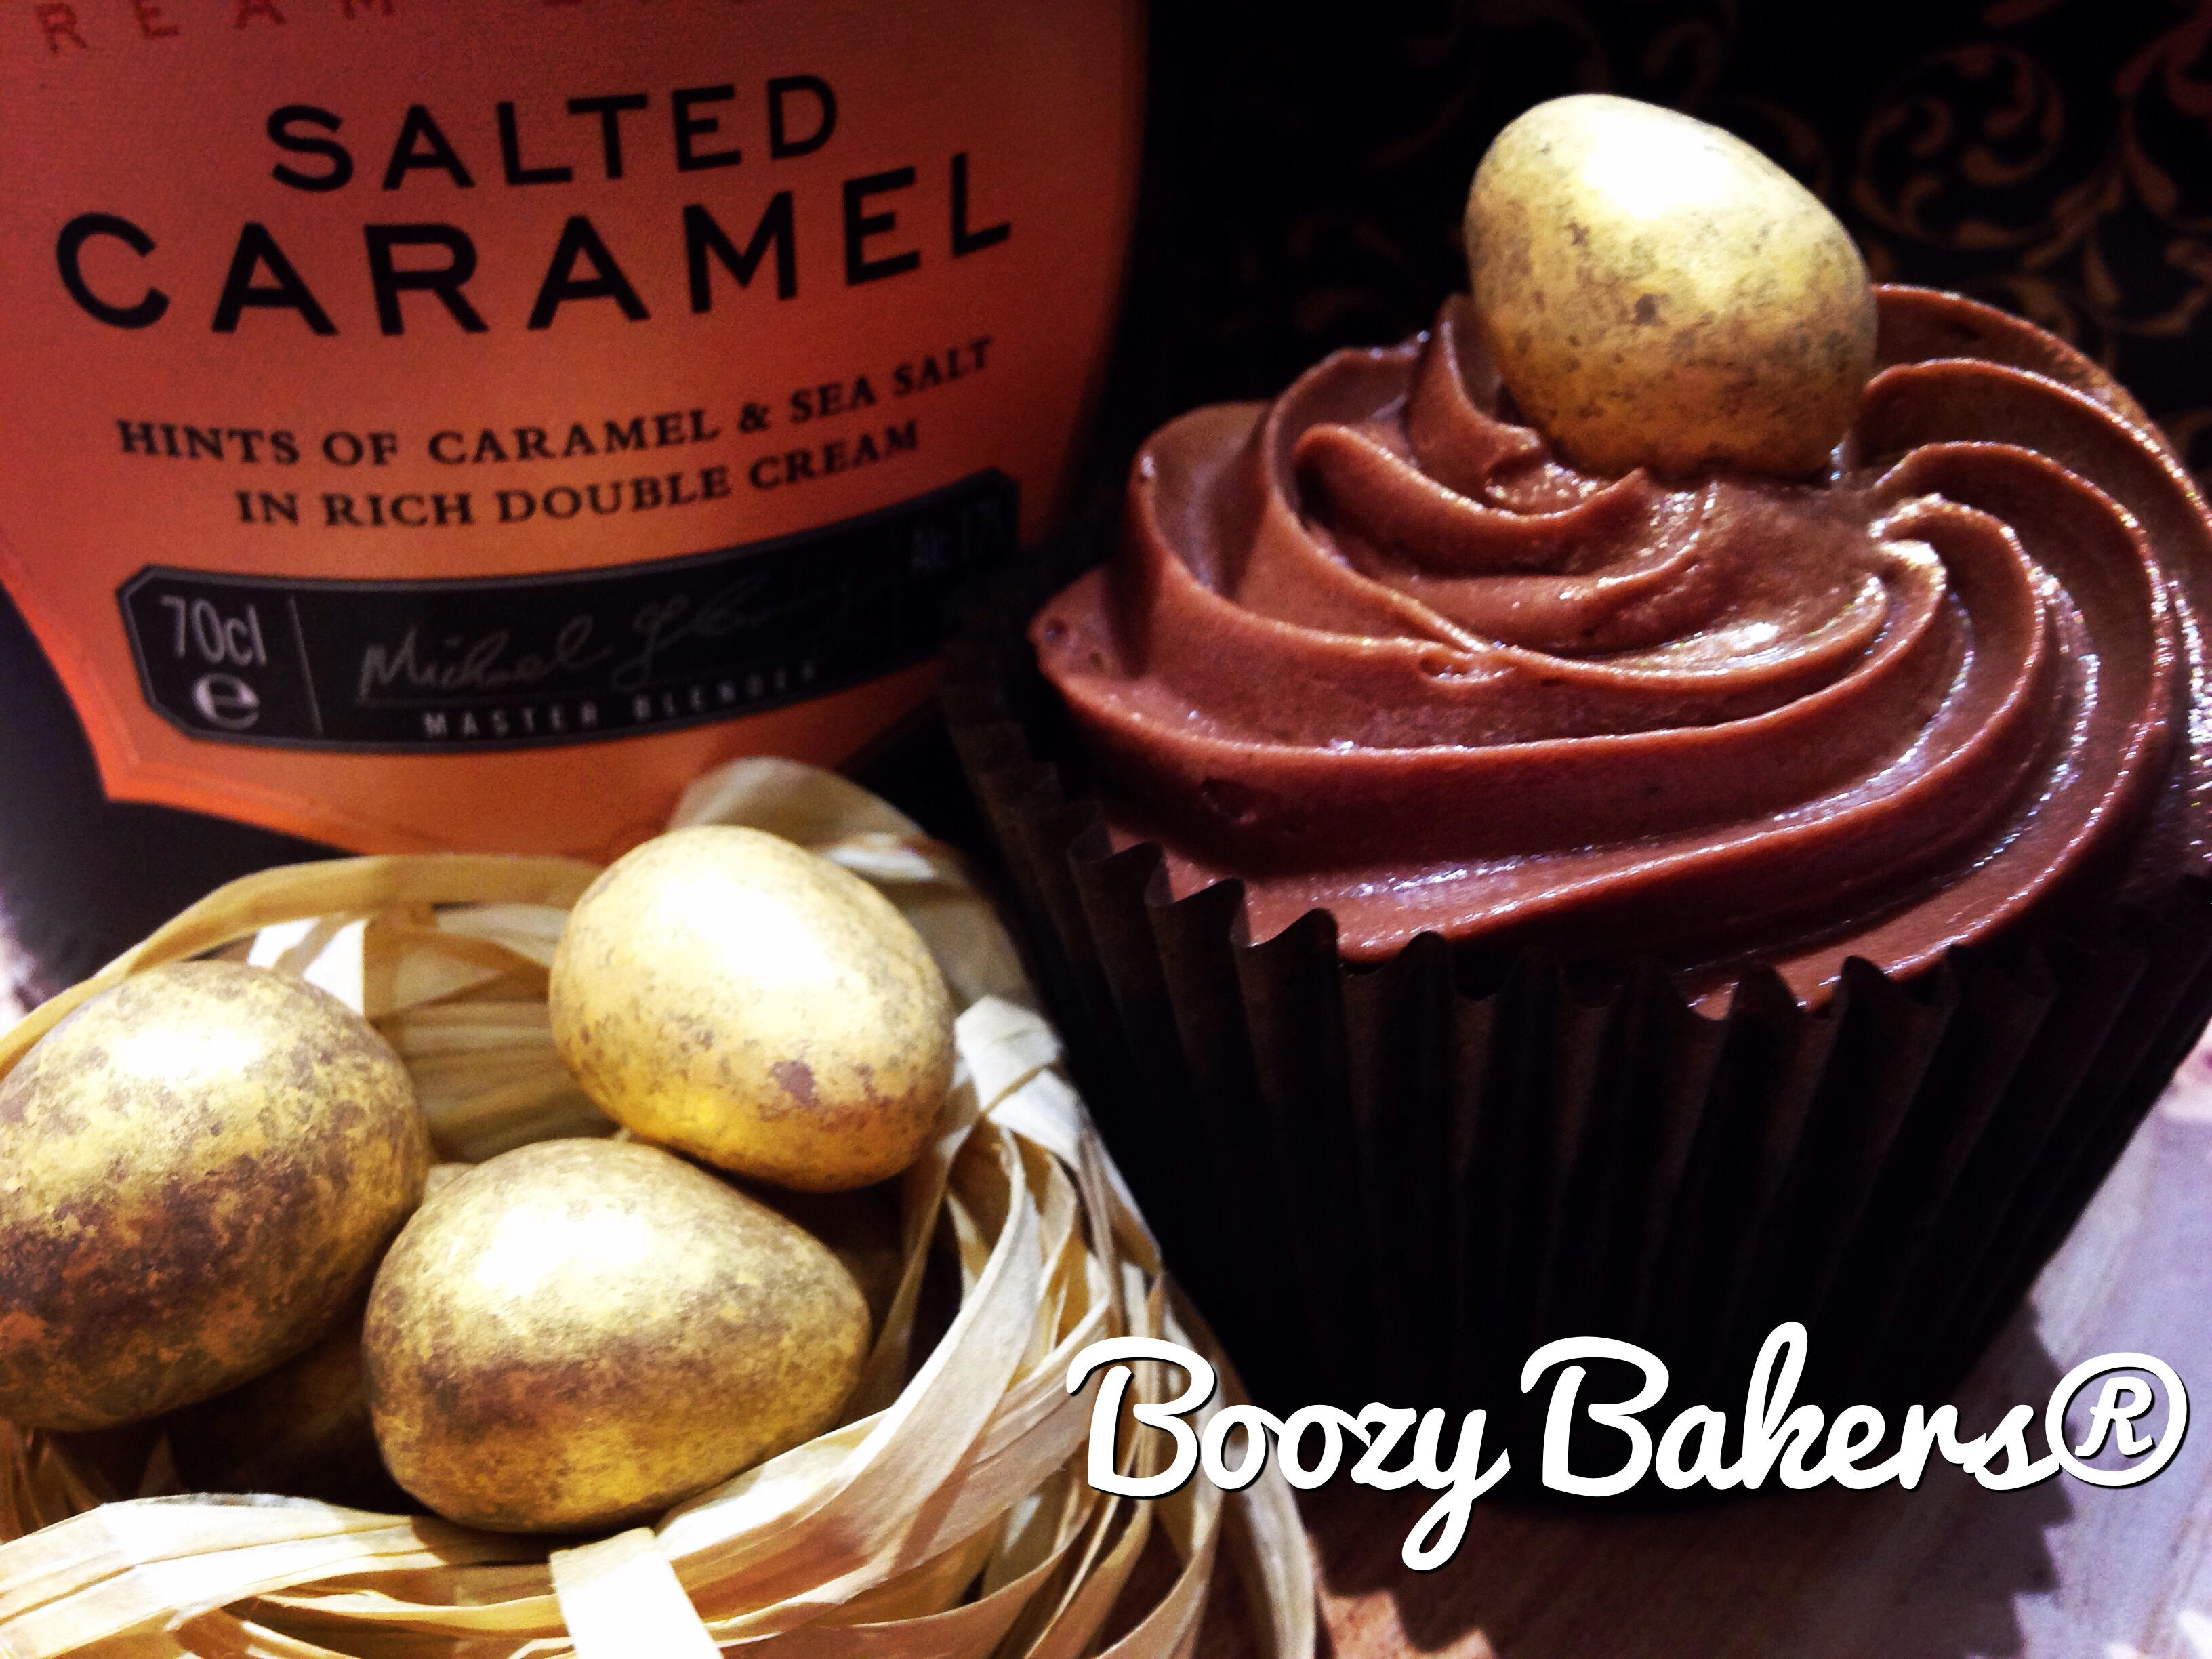 Boozy Bakers Salted Caramel and Chocolate